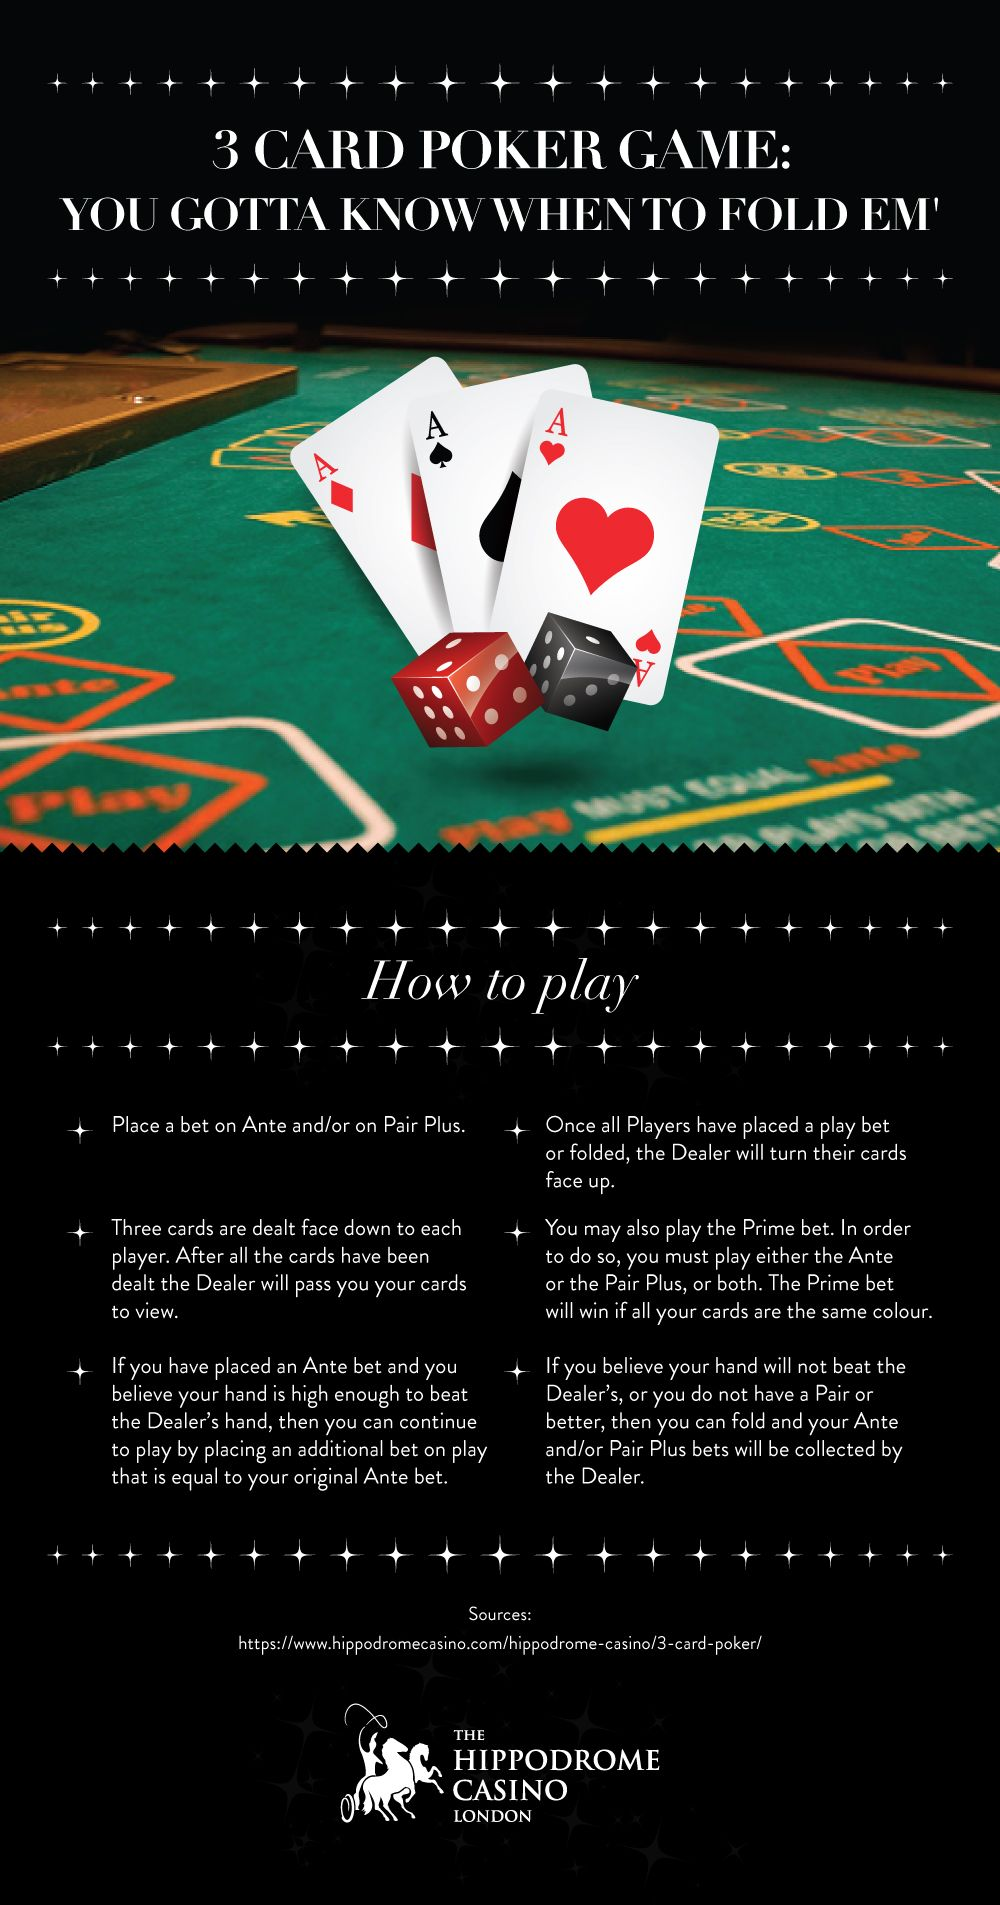 A fast and exciting poker game the object is to get a